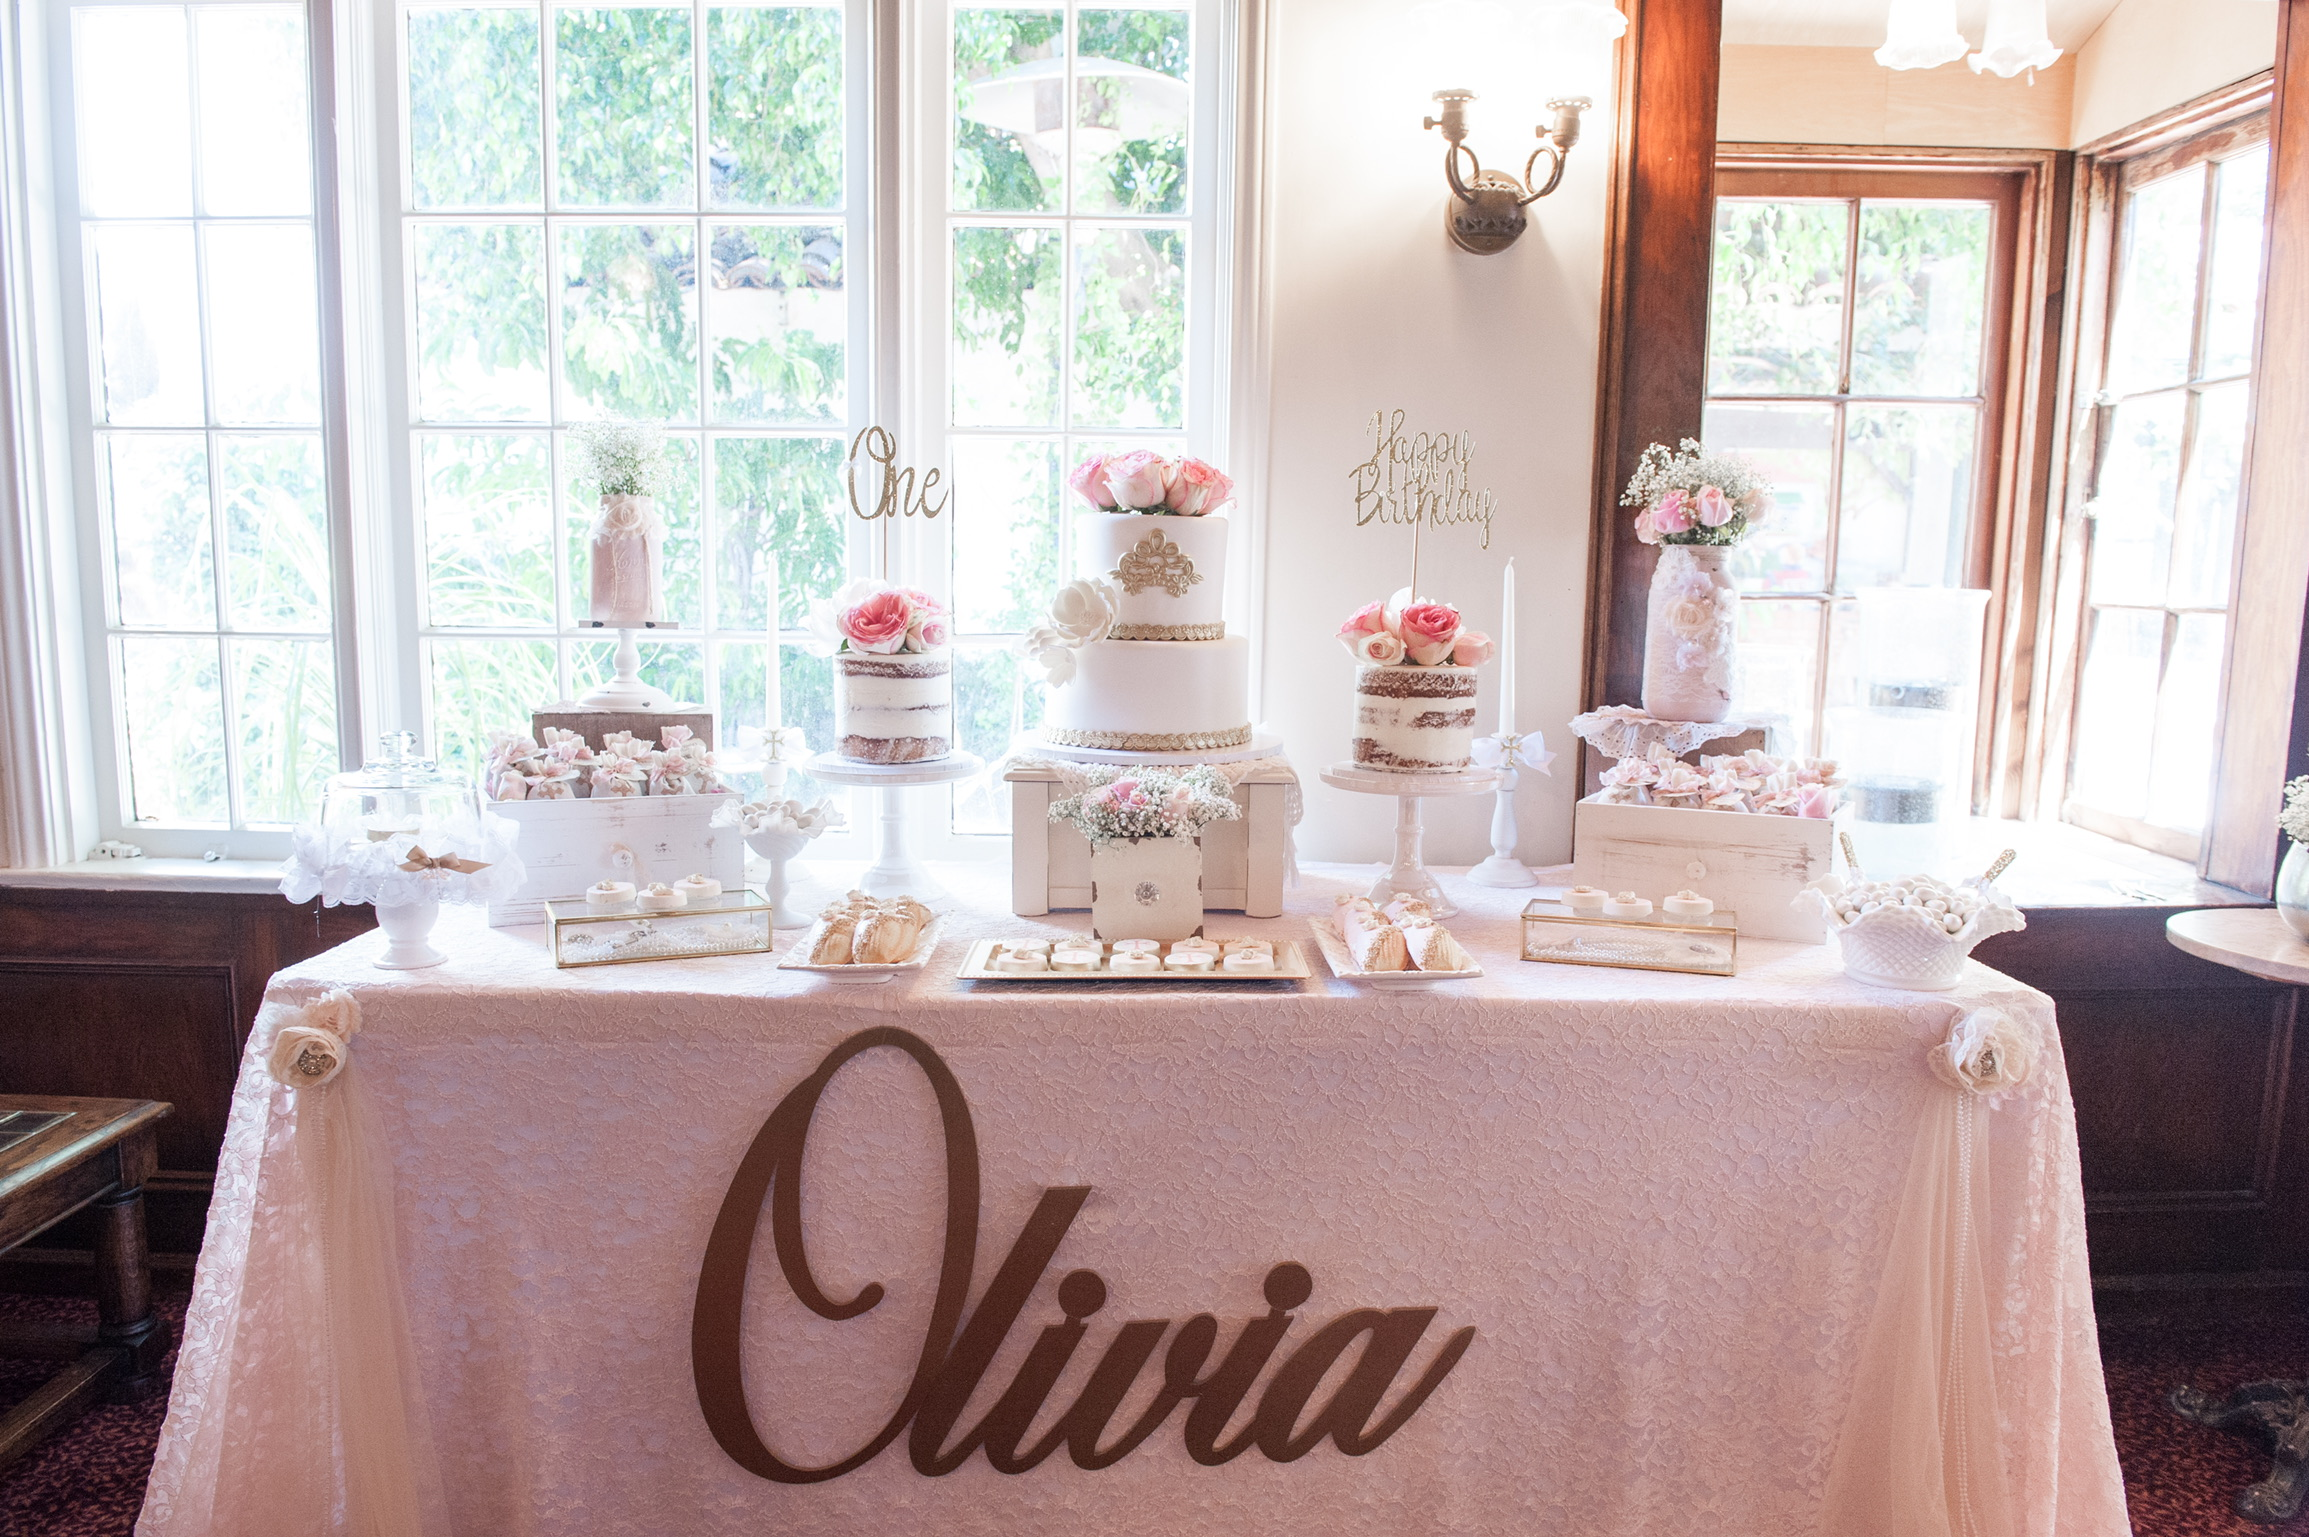 Olivias Shabby chic first birthday